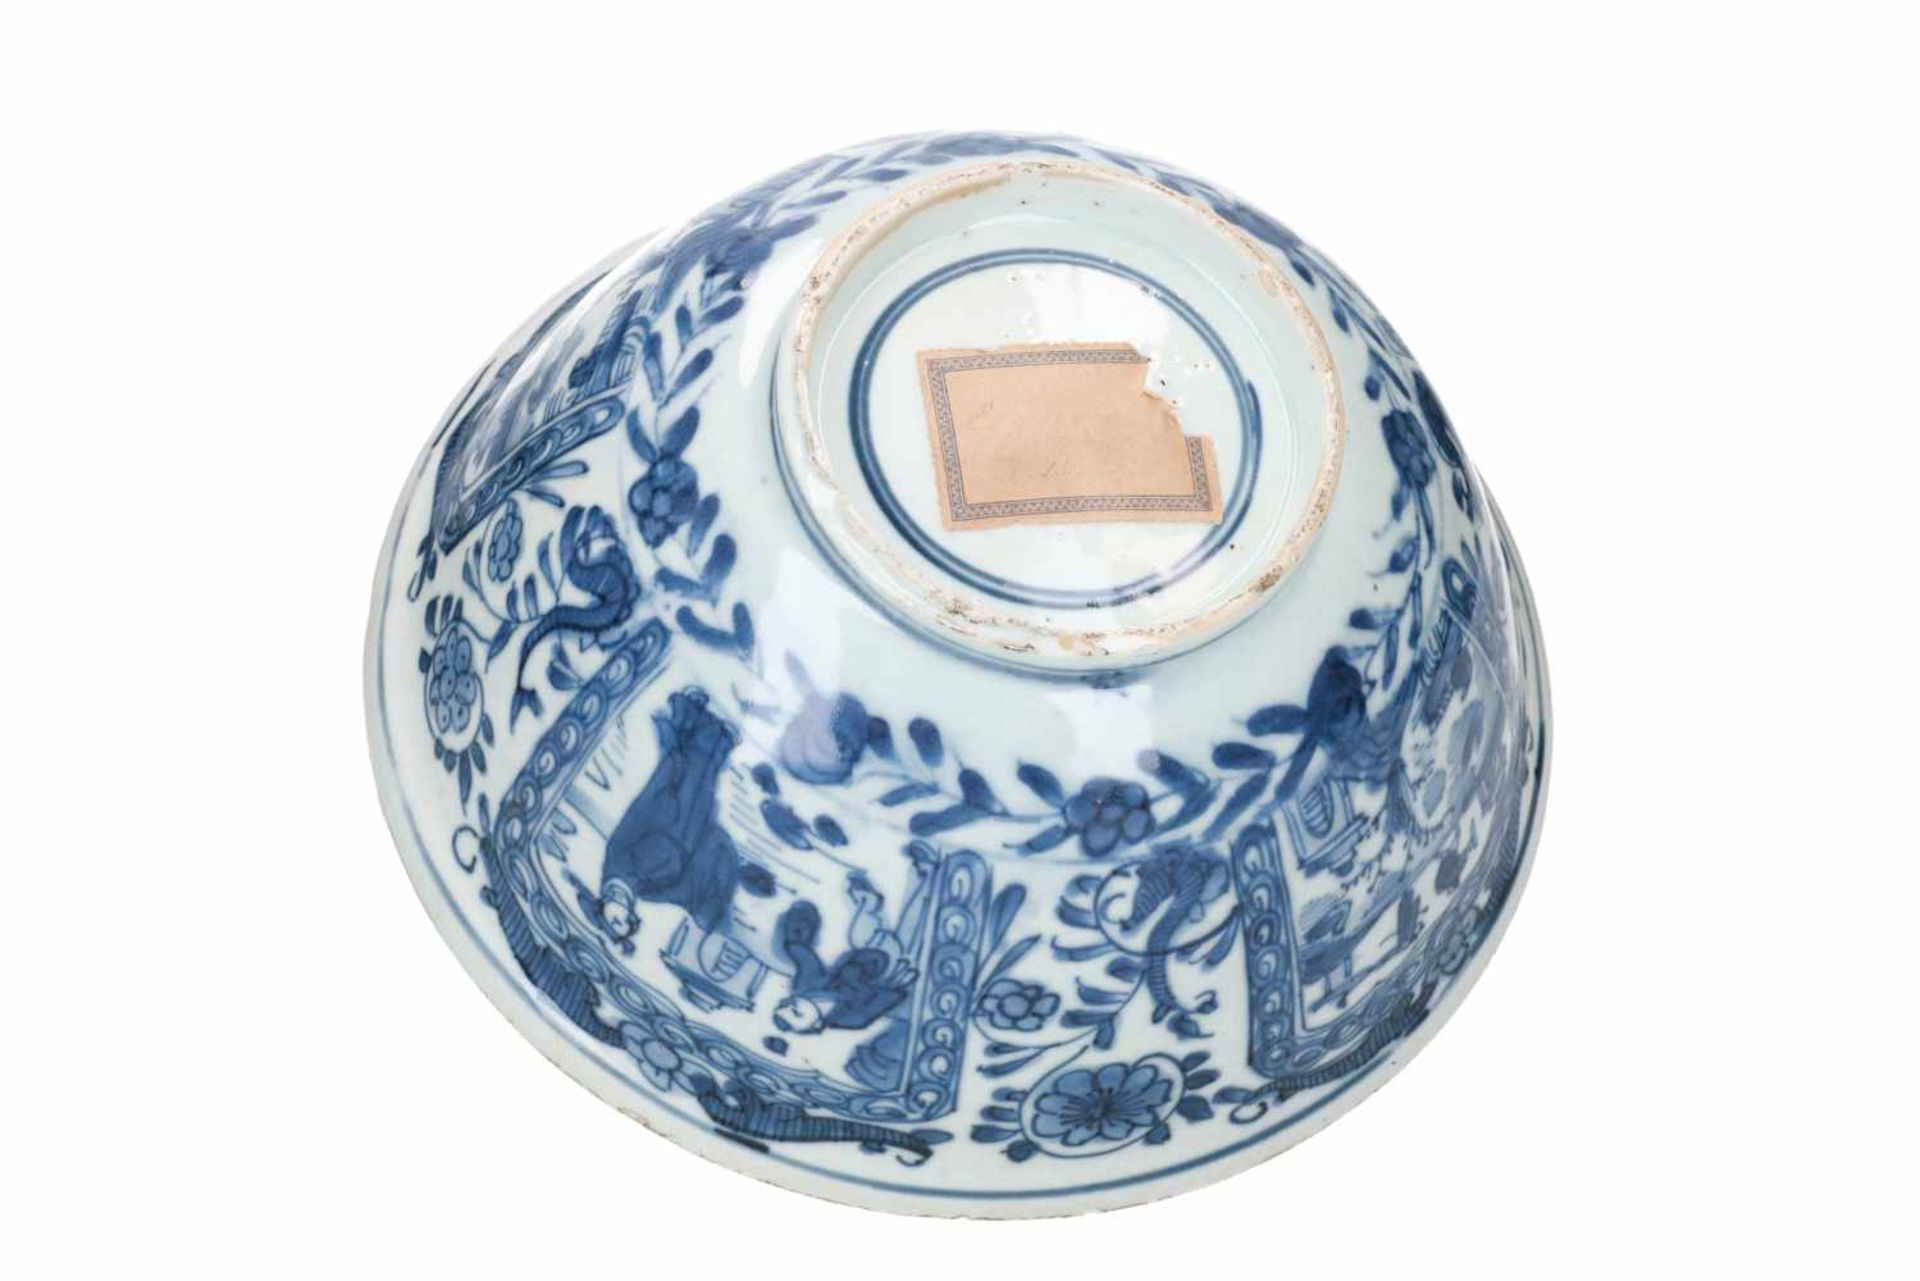 A blue and white porcelain bowl, decorated with figures, tulips and landscapes. Unmarked. China, - Bild 6 aus 6